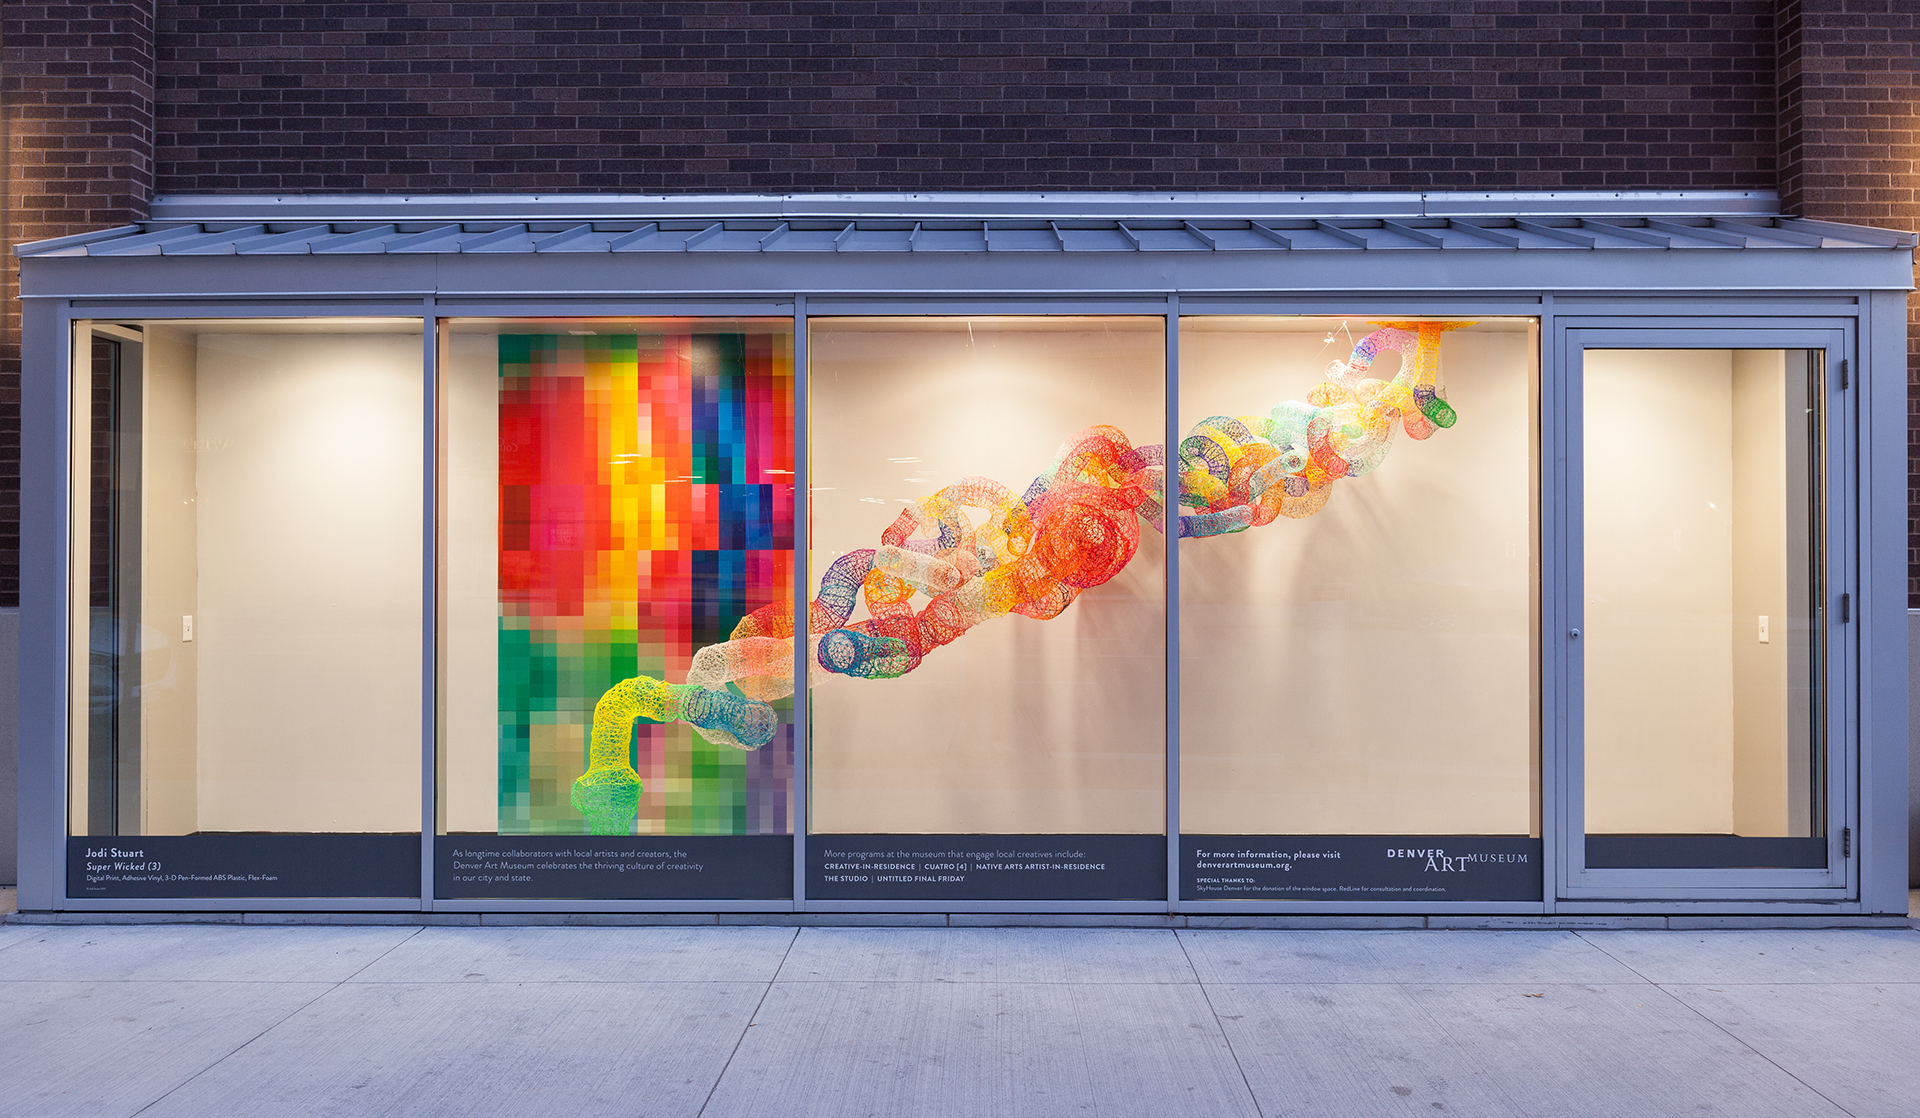 "'Super Wicked #3' 2017 101"" x 290"" x 34"" ABS Plastic, Adhesive Vinyl, Nylon, Flex-Foam  Commission for Skyhouse Denver, in collaboration with Denver Art Museum, Skyhouse Apartments located 18th and Lincoln, Photo Wes Magyar"